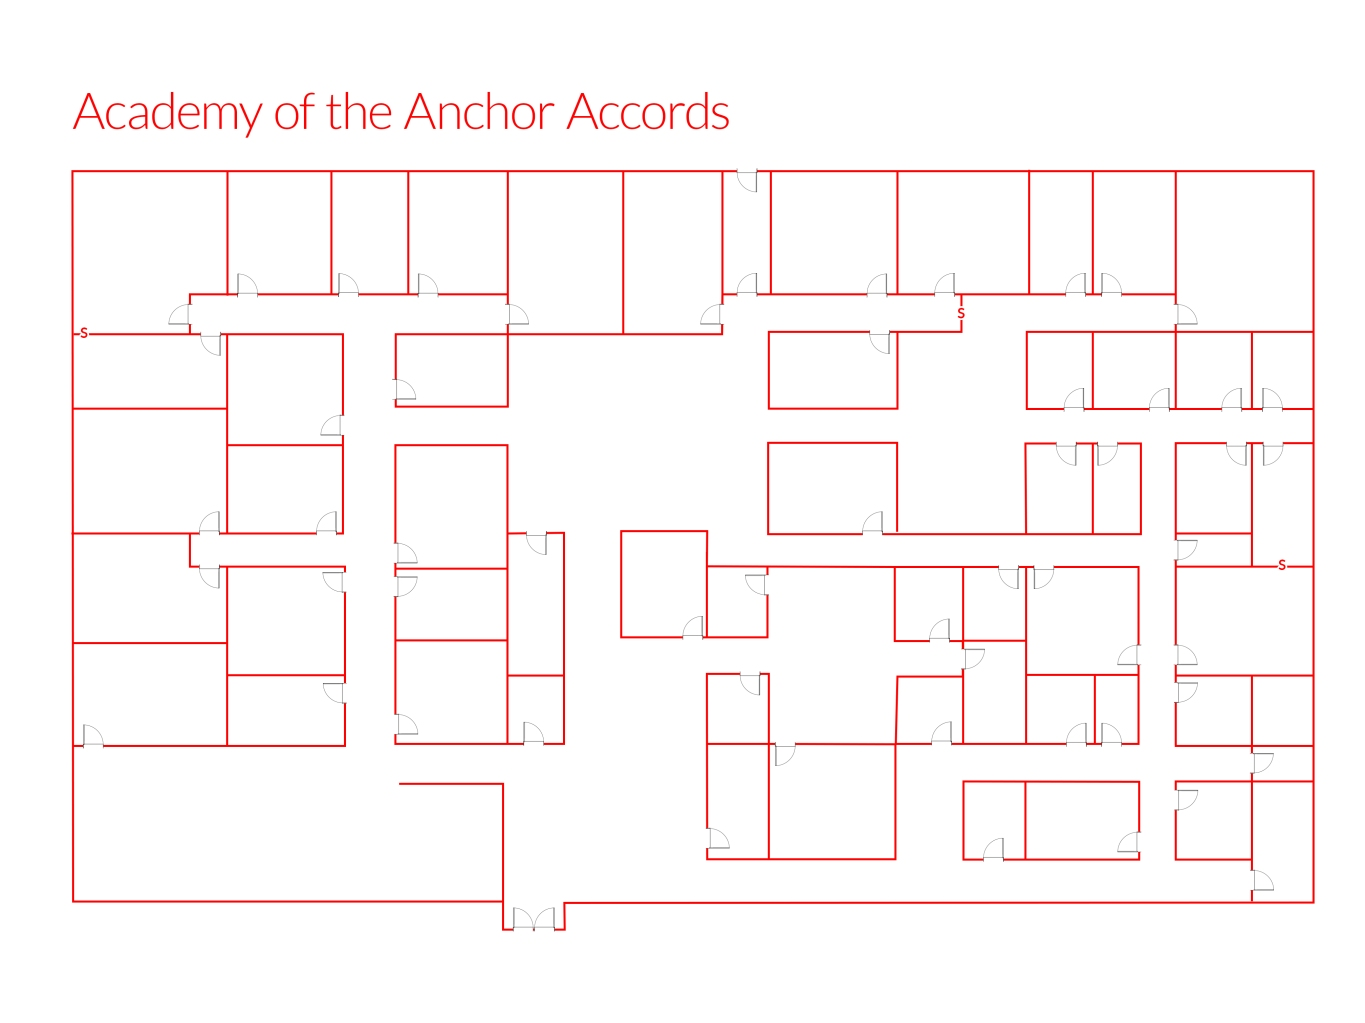 Academy of the Anchor Accords floor plan map